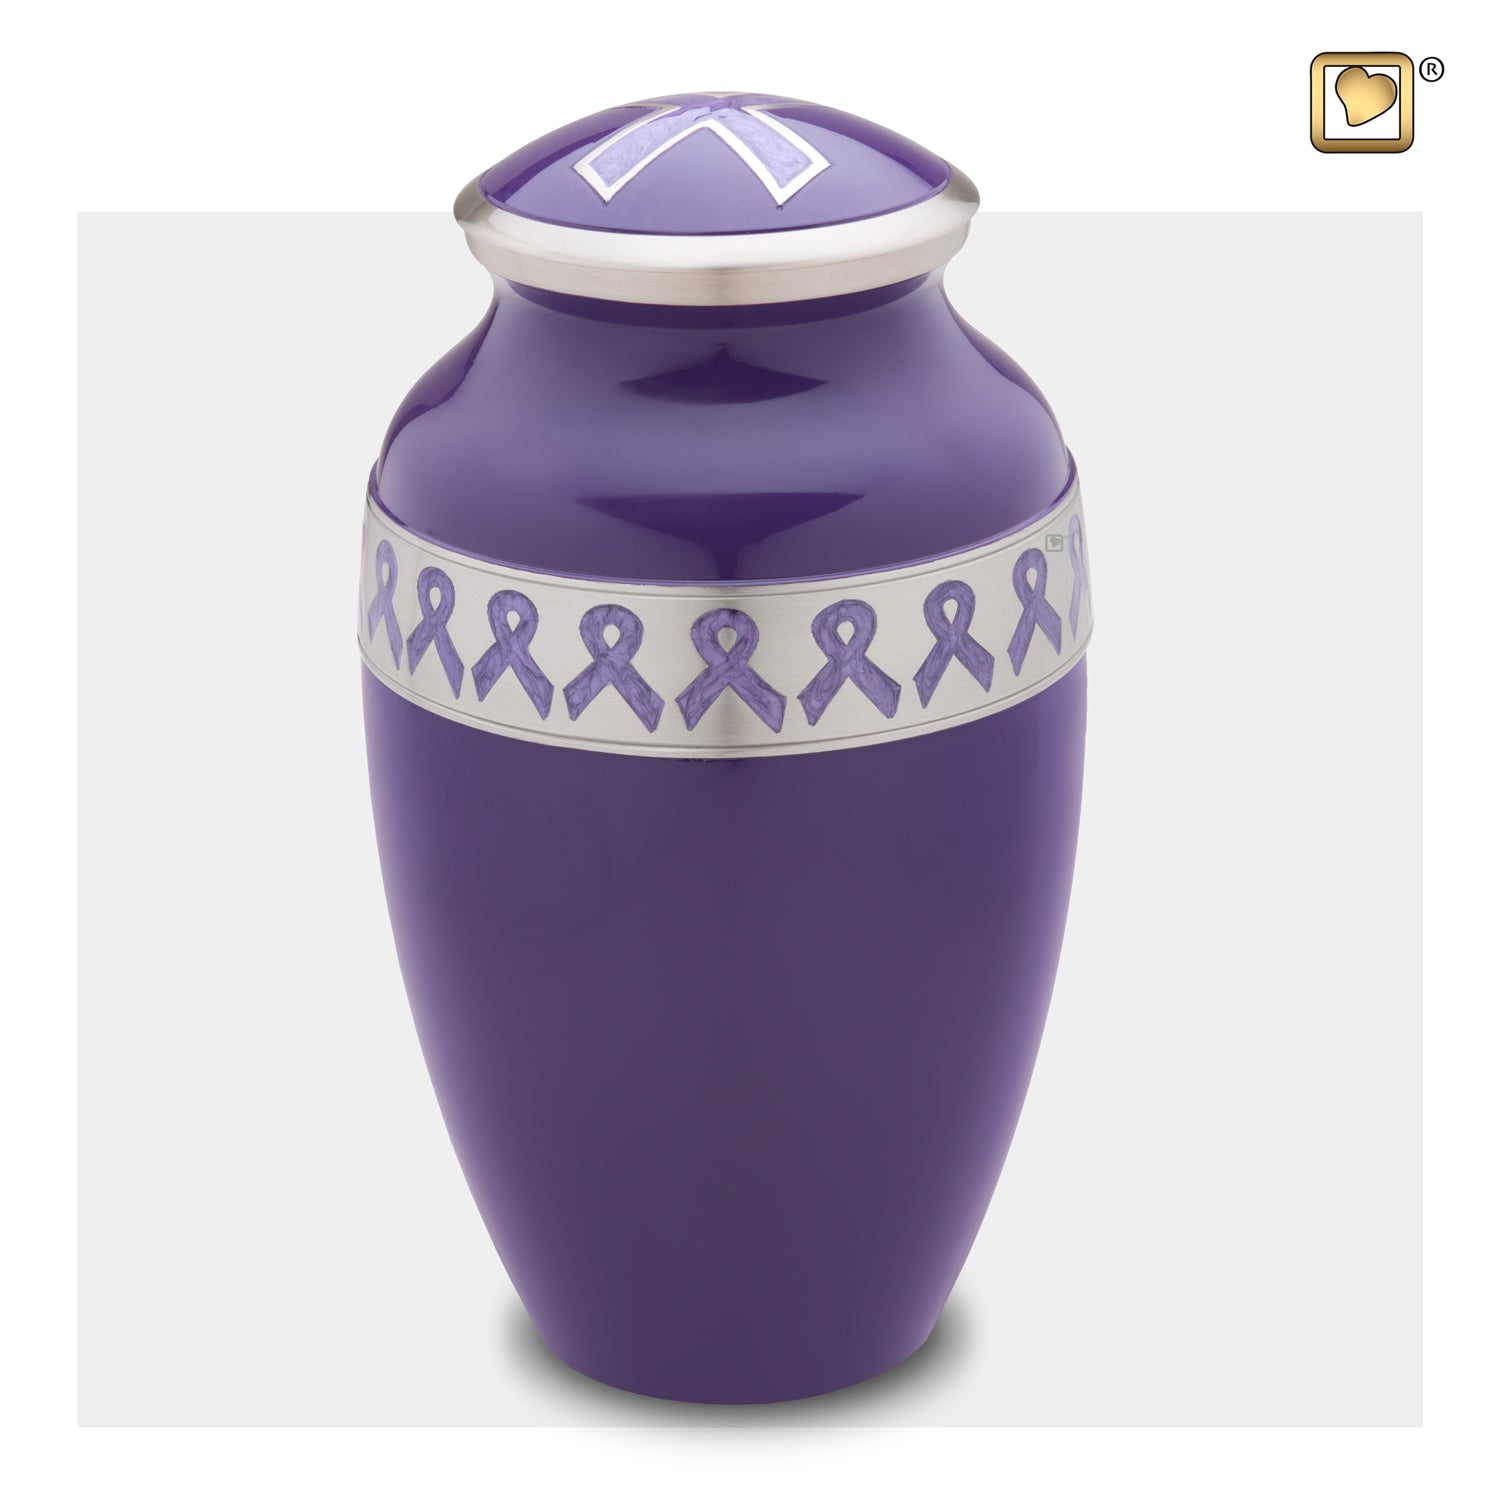 Adult Awareness Purple Cremation Urn